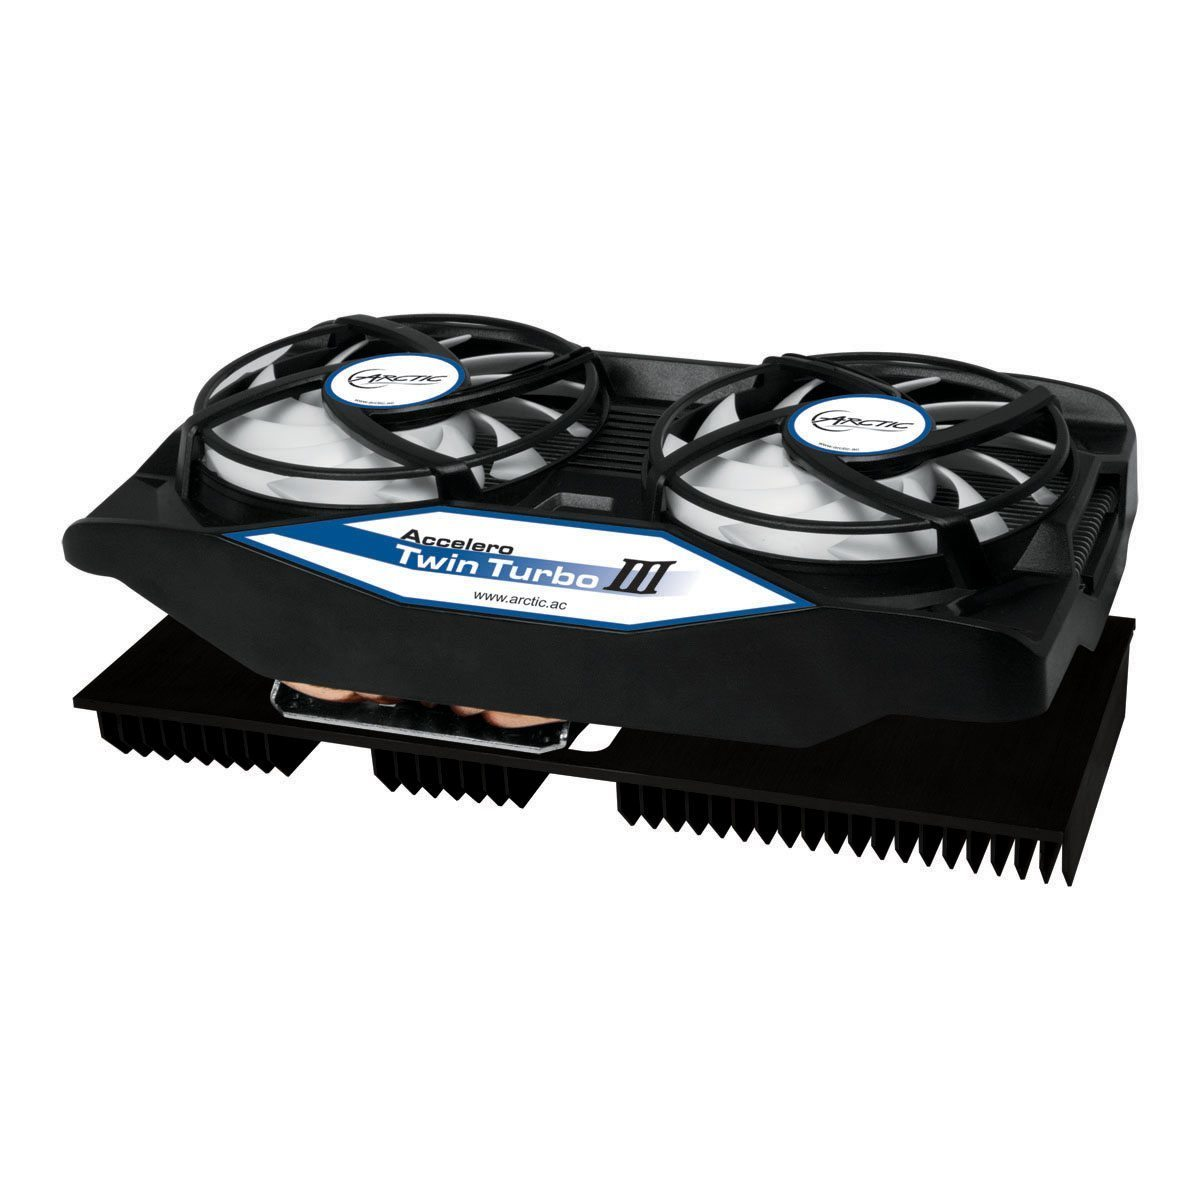 Accelero Twin Turbo III VGA Cooler